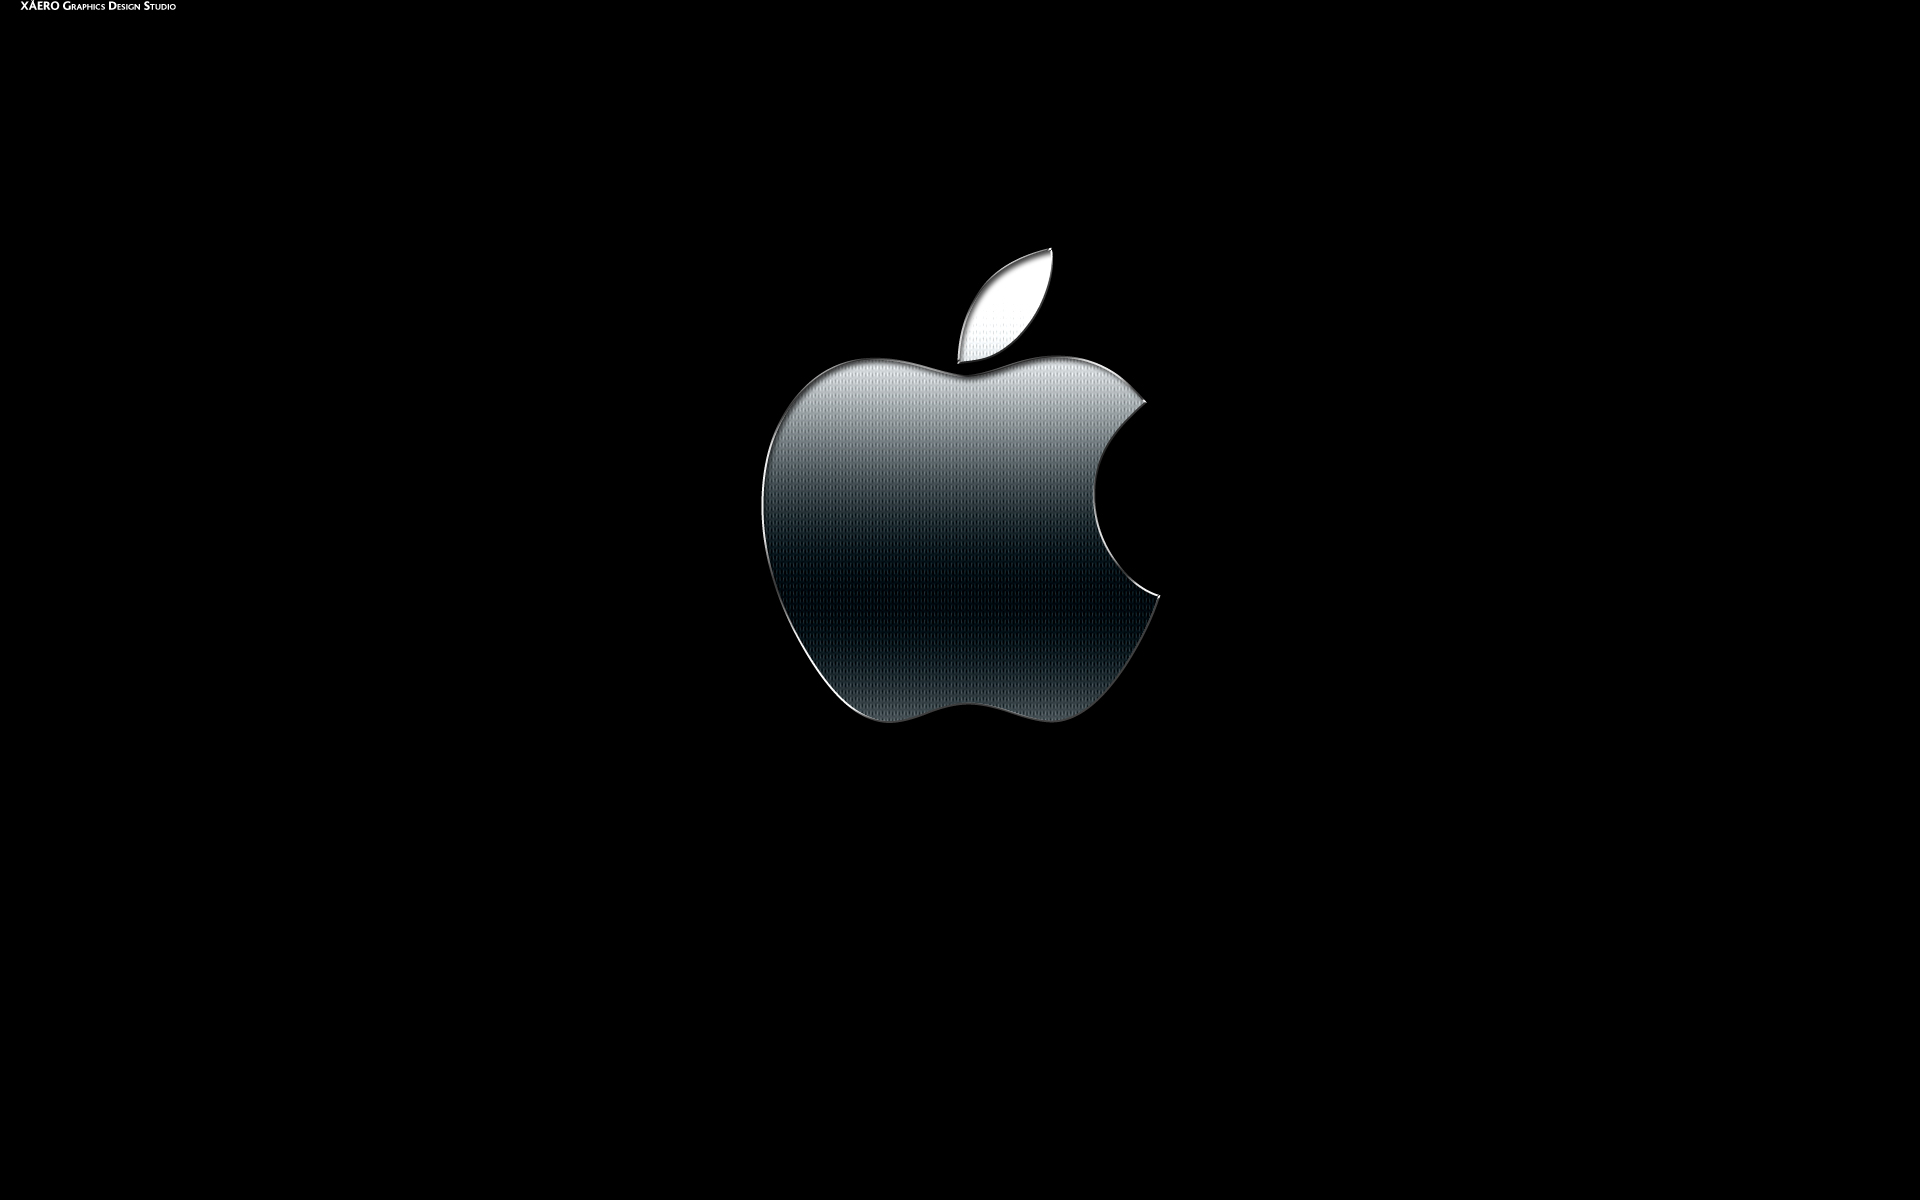 Desktop widescreen wallpaper Apple 1920x1200